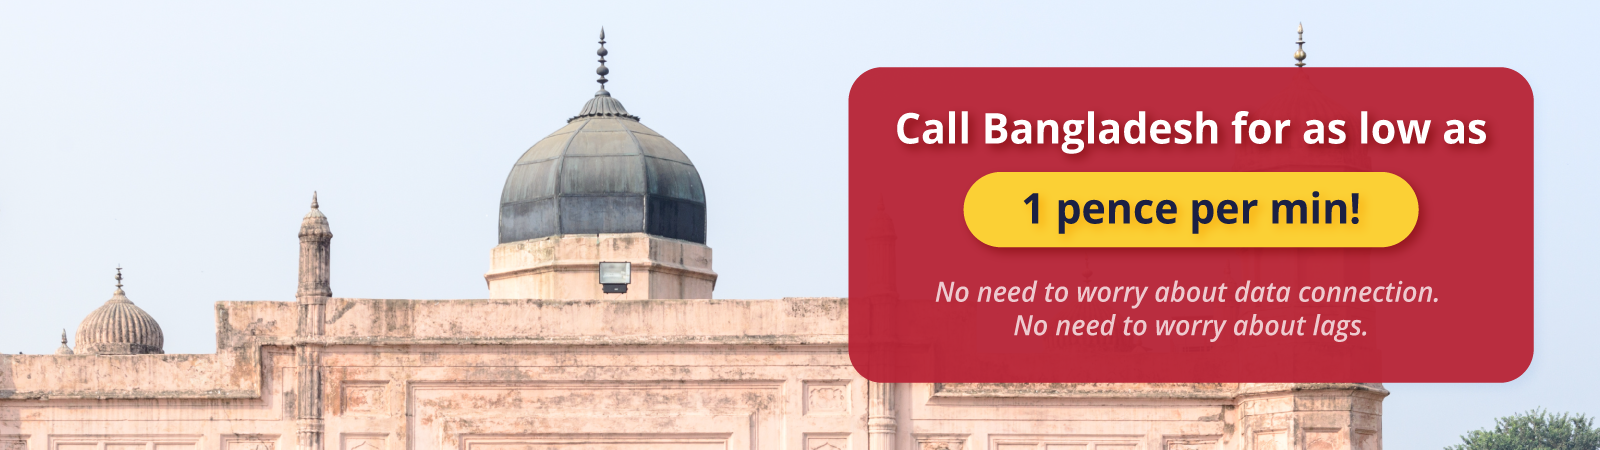 Cheap calls to Bangladesh